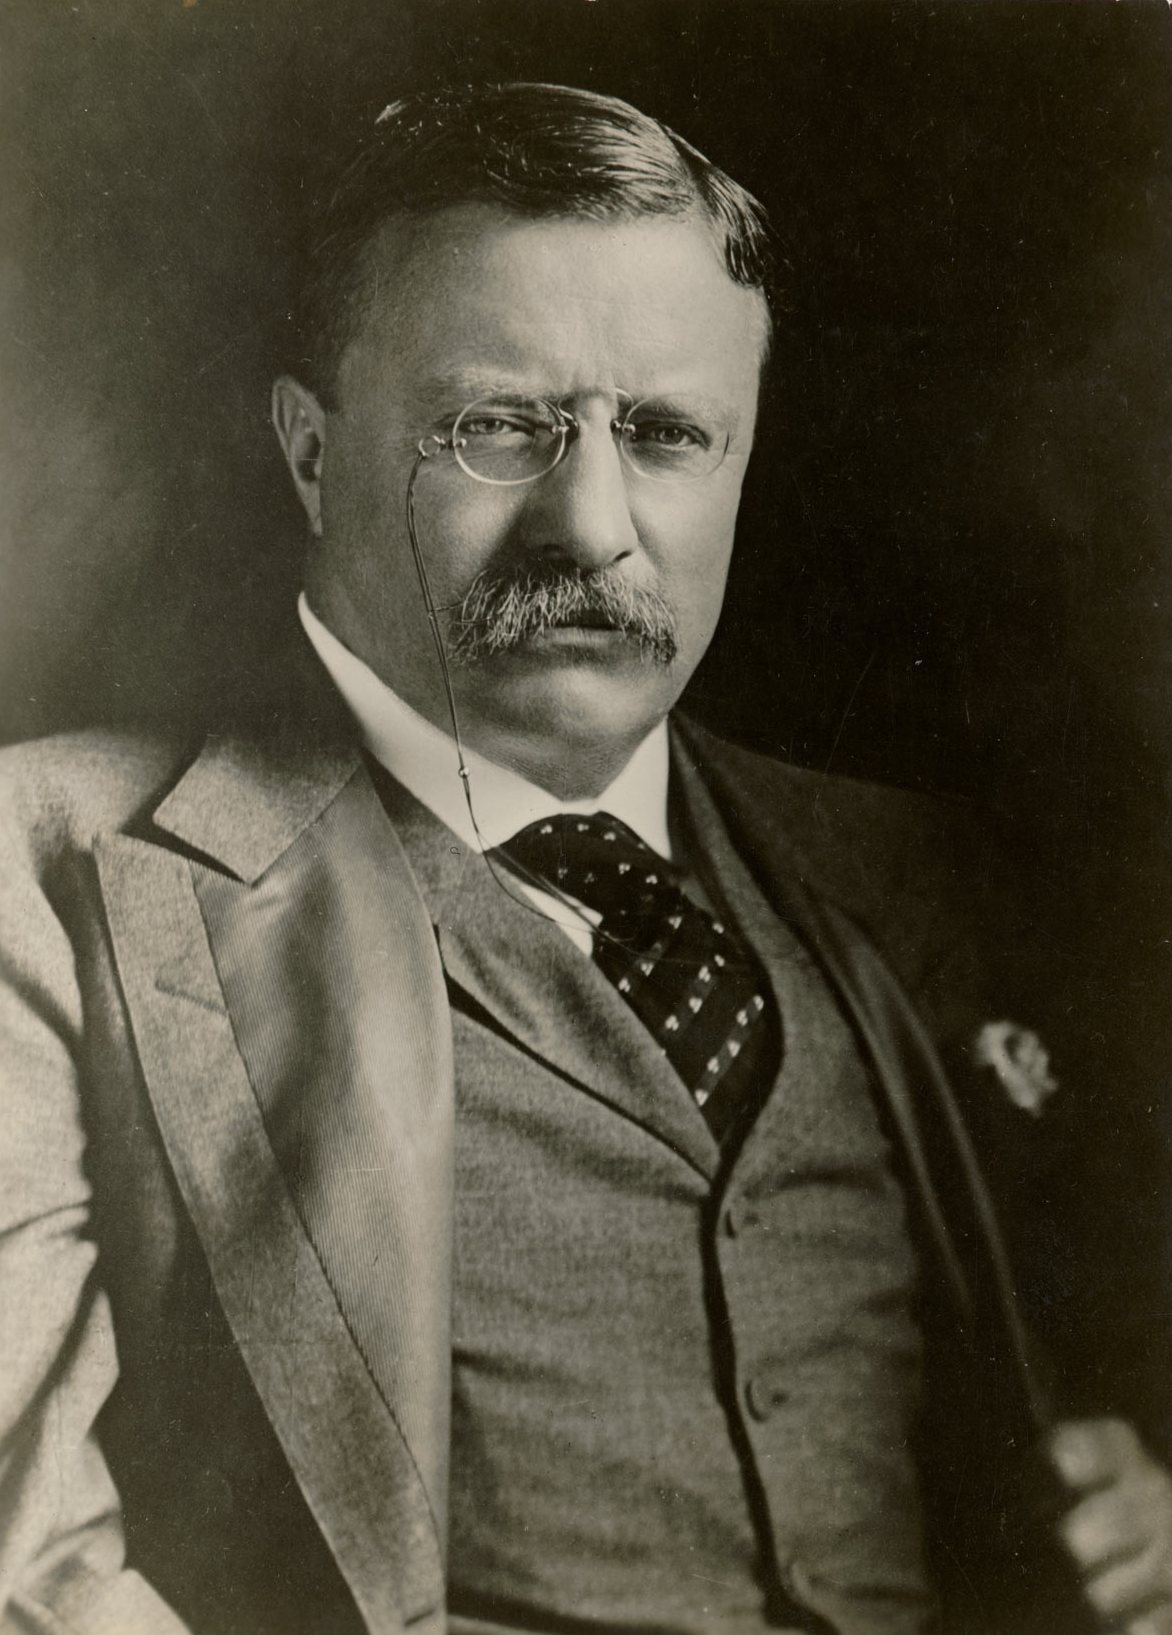 theodore roosevelt Theodore roosevelt (/ˈroʊzəvɛlt/ roh-zə-velt[a] october 27, 1858 - january 6, 1919) was an american statesman, author, explorer, soldier, naturalist, and reformer who served as the 26th president of the united states from 1901 to 1909.